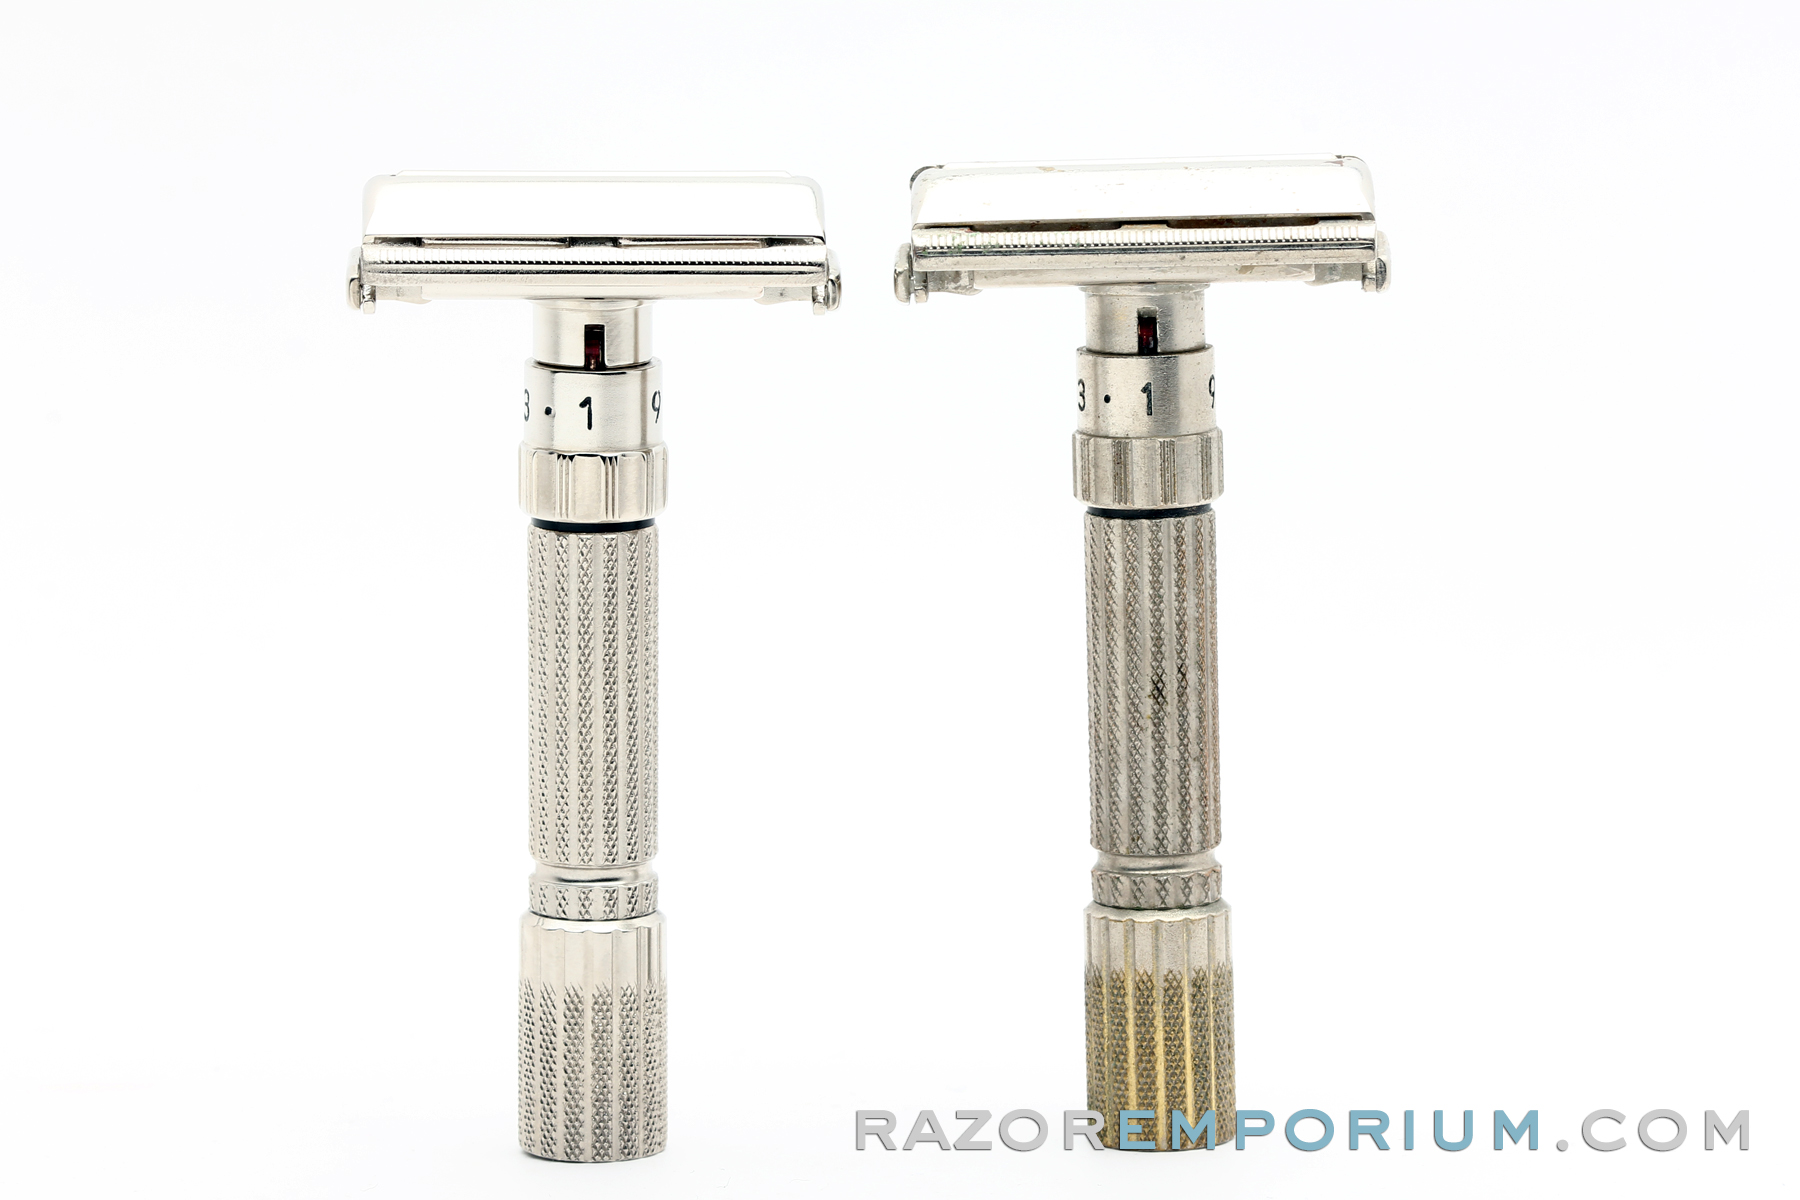 Gillette Factory Finish Nickel Revamp